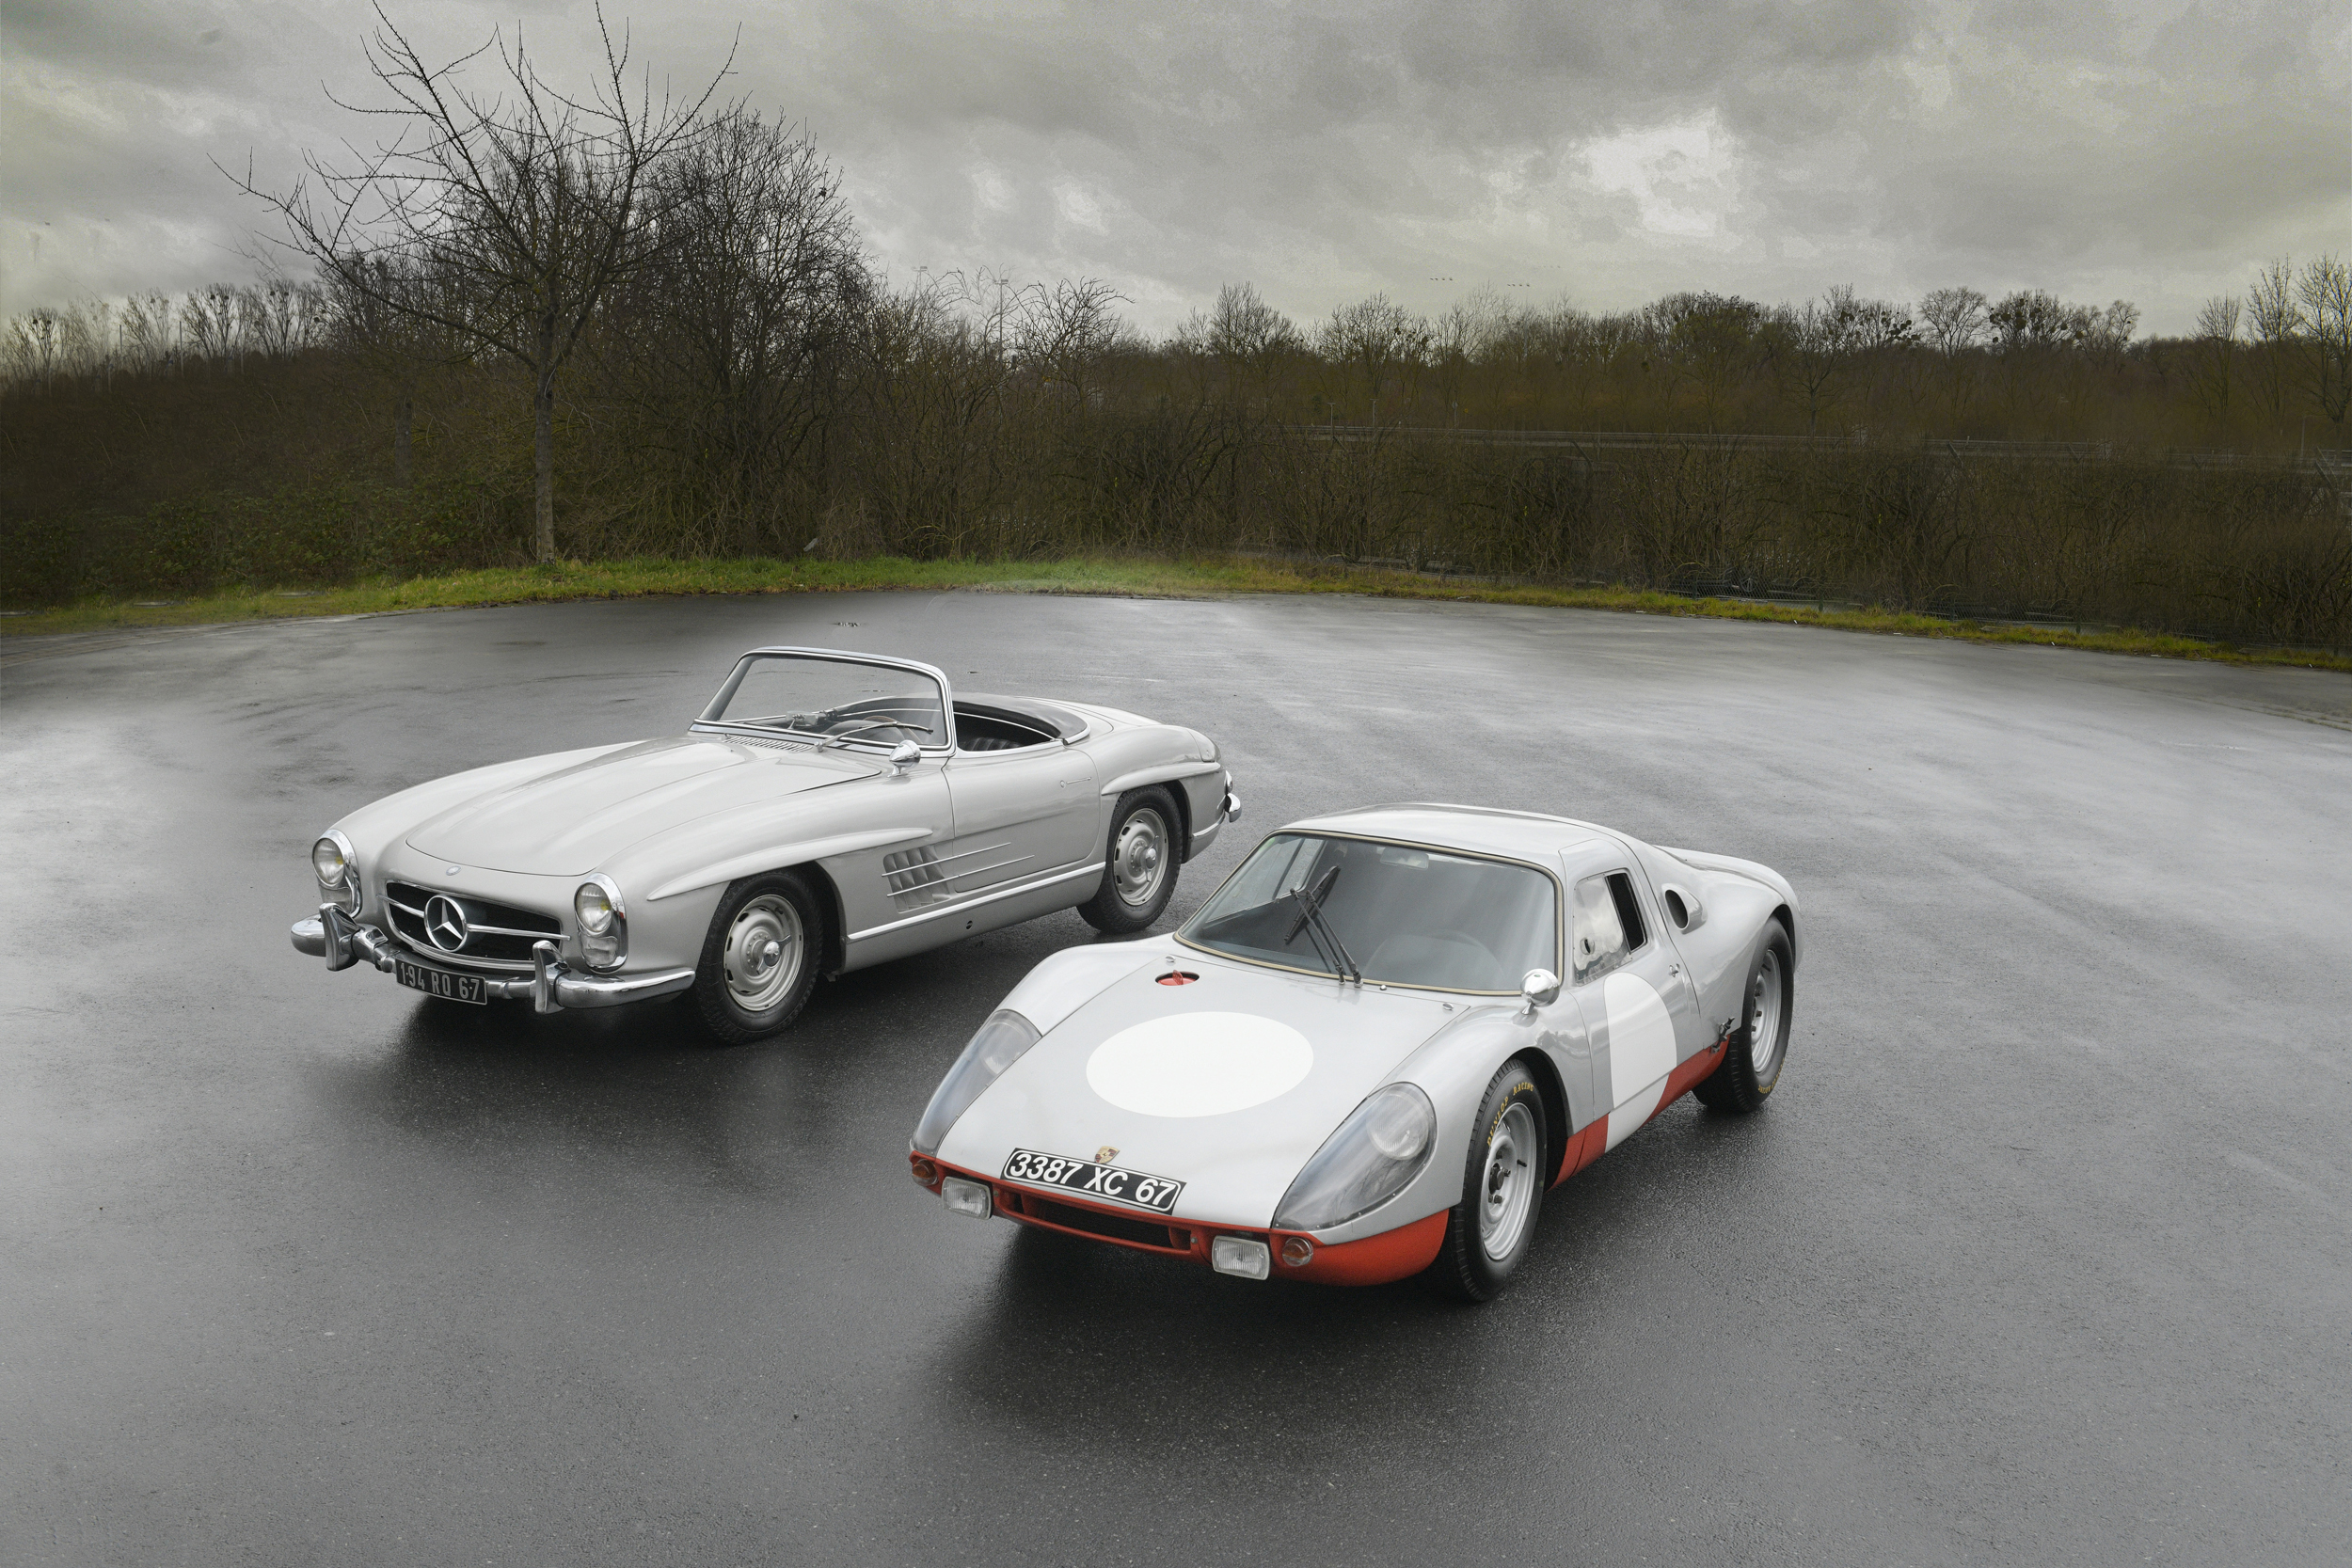 The 1958 Mercedes-Benz 300 SL Roadster and 1964 Porsche 904 GTS offered from the Petitjean Collection (Credit – © 2020 Courtesy of RM Sotheby's)